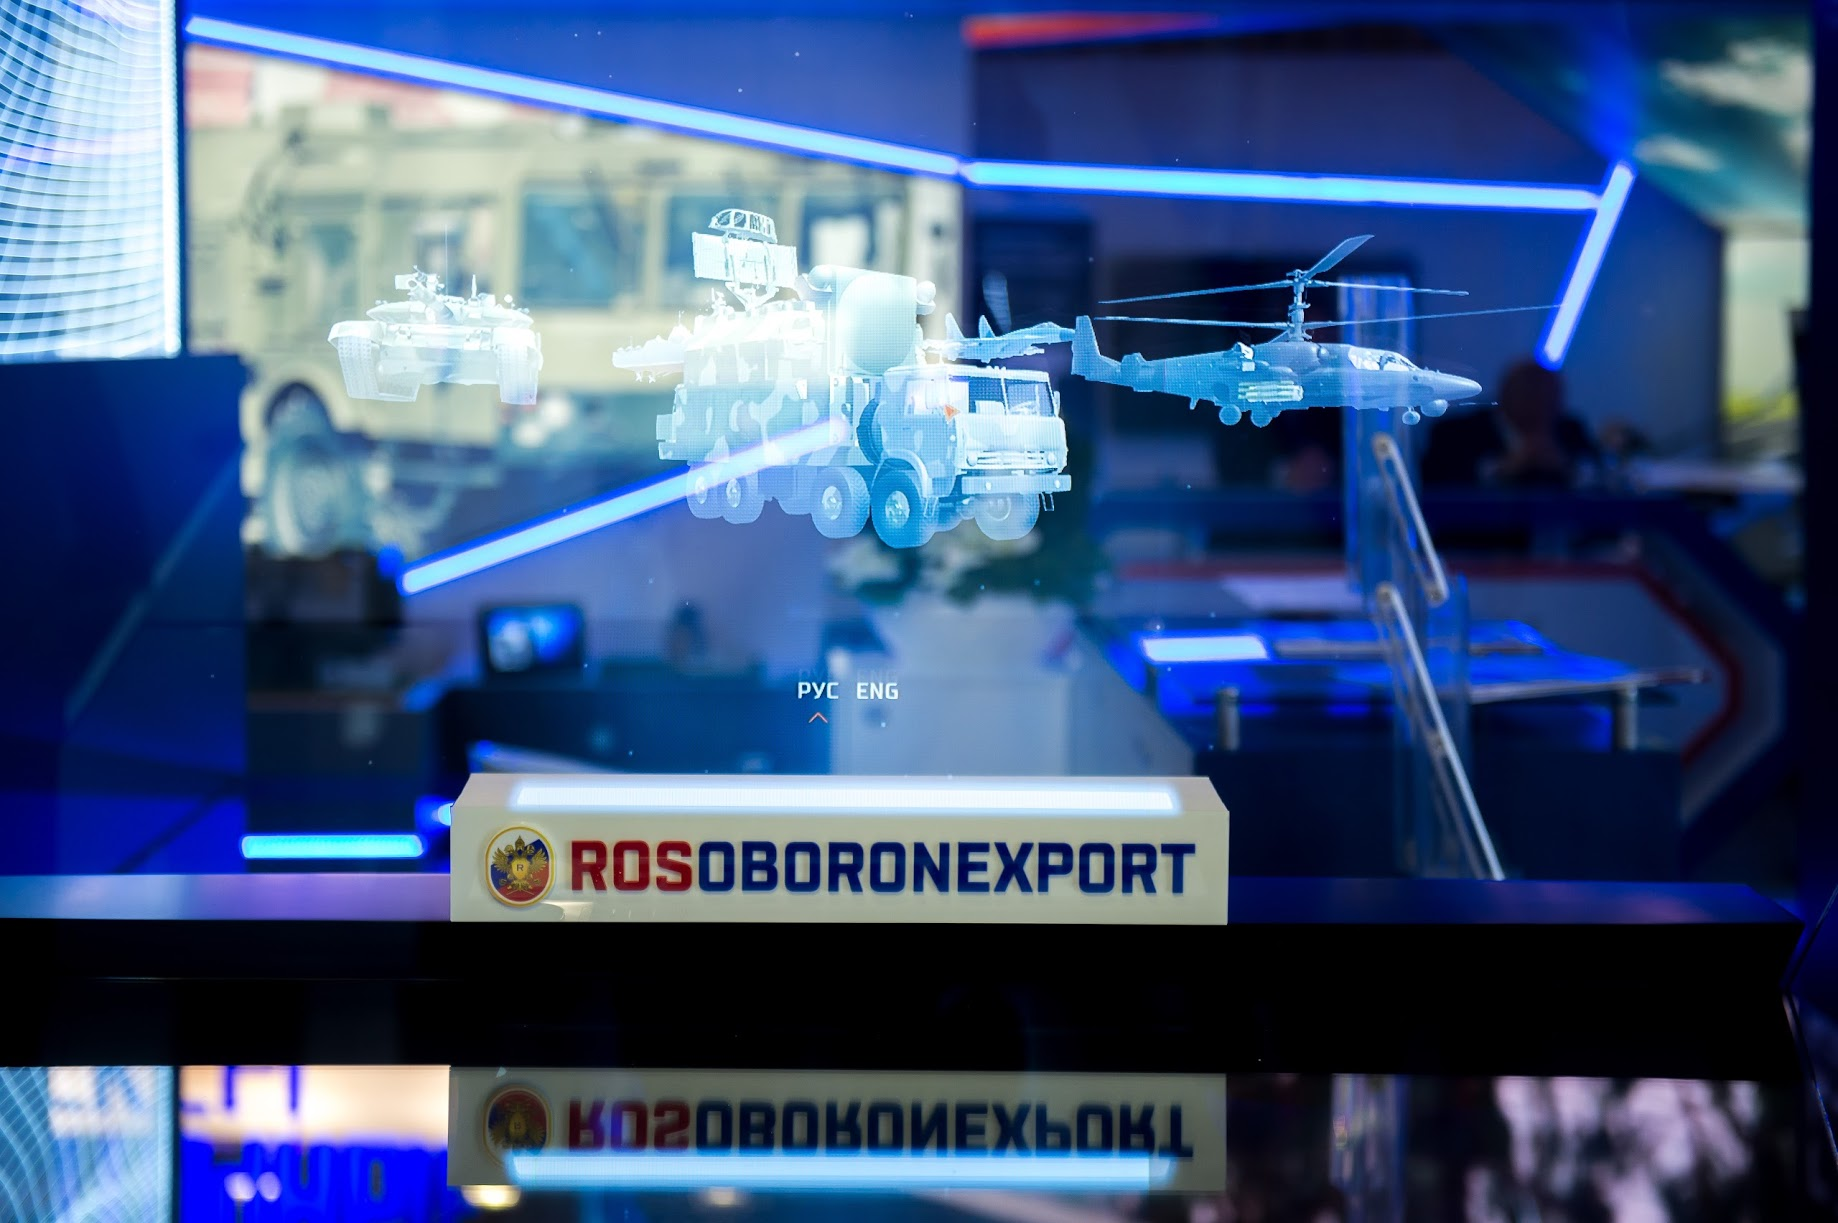 Rosoboronexport to Discuss the Status of Arms Exports With the Business Community at SPIEF 2019